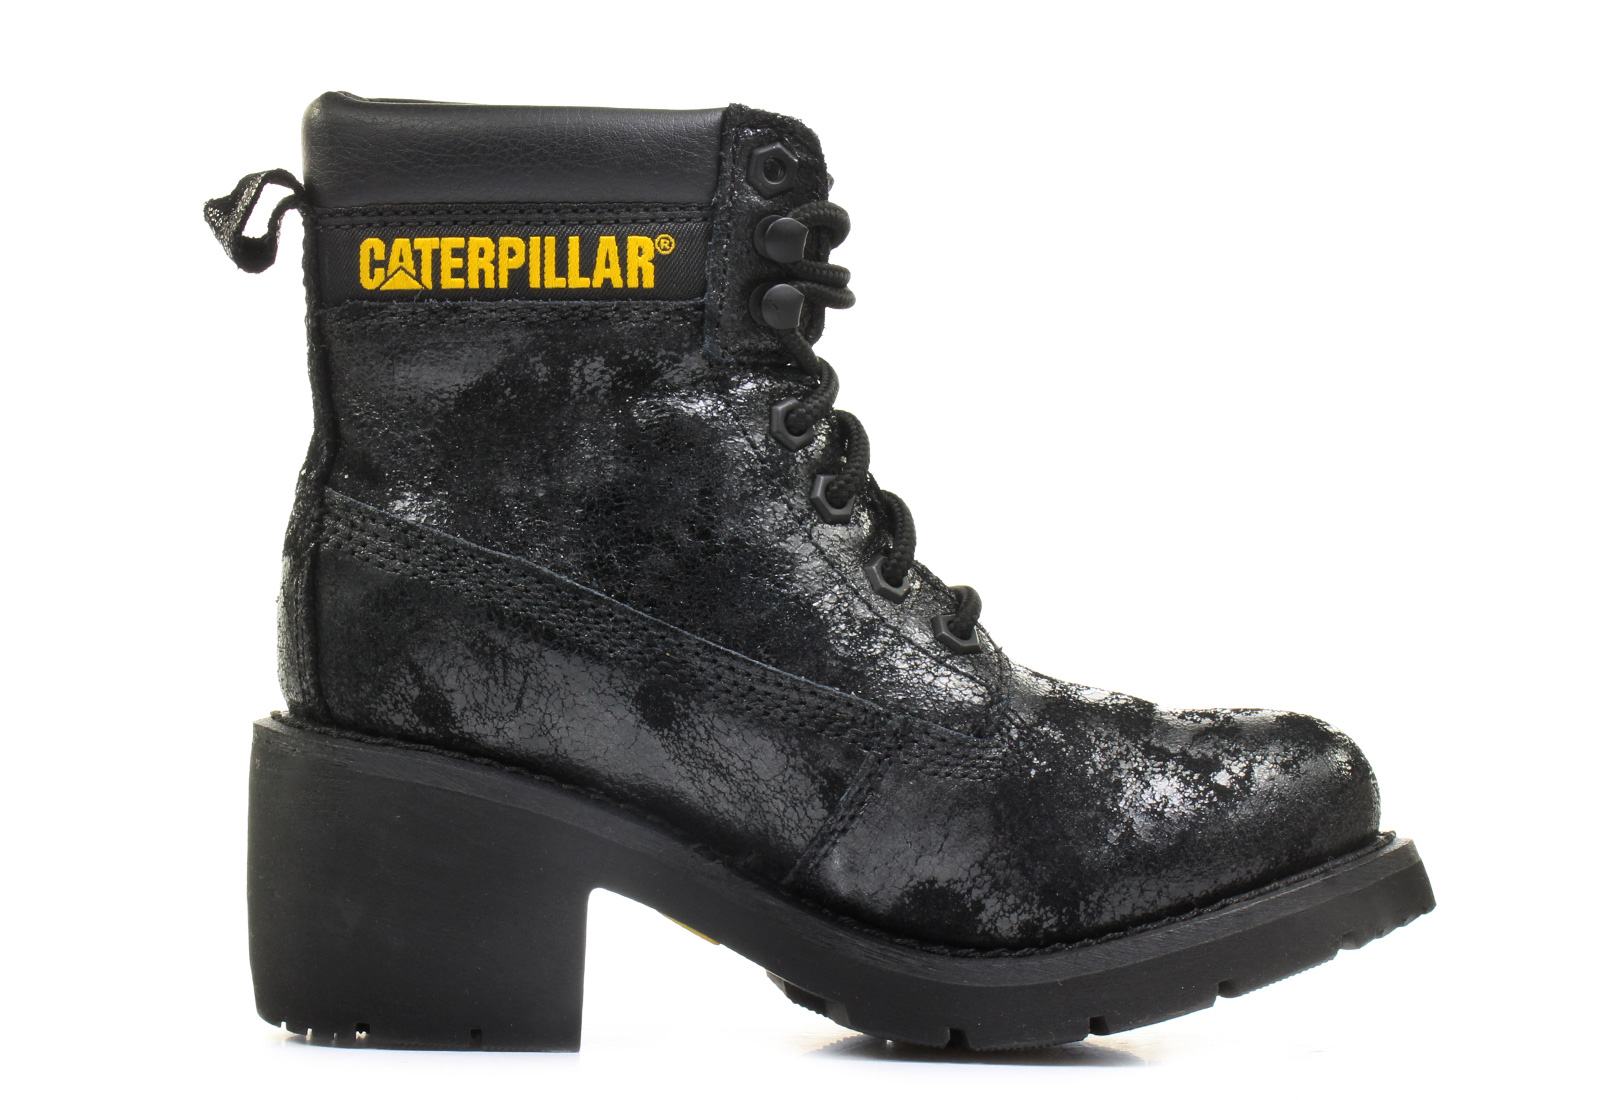 3946efcf752 Cat Boots - Ottawa - 307090-blk - Online shop for sneakers, shoes ...